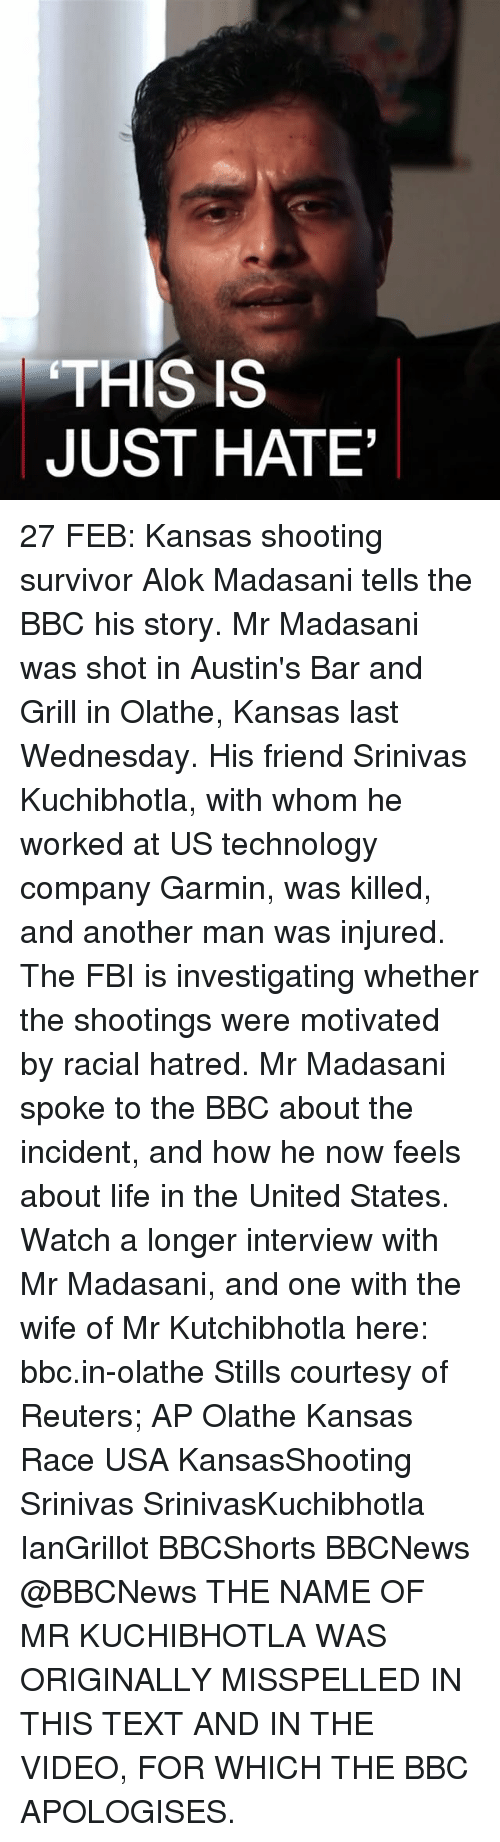 Fbi, Memes, and Texting: THIS IS  JUST HATE' 27 FEB: Kansas shooting survivor Alok Madasani tells the BBC his story. Mr Madasani was shot in Austin's Bar and Grill in Olathe, Kansas last Wednesday. His friend Srinivas Kuchibhotla, with whom he worked at US technology company Garmin, was killed, and another man was injured. The FBI is investigating whether the shootings were motivated by racial hatred. Mr Madasani spoke to the BBC about the incident, and how he now feels about life in the United States. Watch a longer interview with Mr Madasani, and one with the wife of Mr Kutchibhotla here: bbc.in-olathe Stills courtesy of Reuters; AP Olathe Kansas Race USA KansasShooting Srinivas SrinivasKuchibhotla IanGrillot BBCShorts BBCNews @BBCNews THE NAME OF MR KUCHIBHOTLA WAS ORIGINALLY MISSPELLED IN THIS TEXT AND IN THE VIDEO, FOR WHICH THE BBC APOLOGISES.